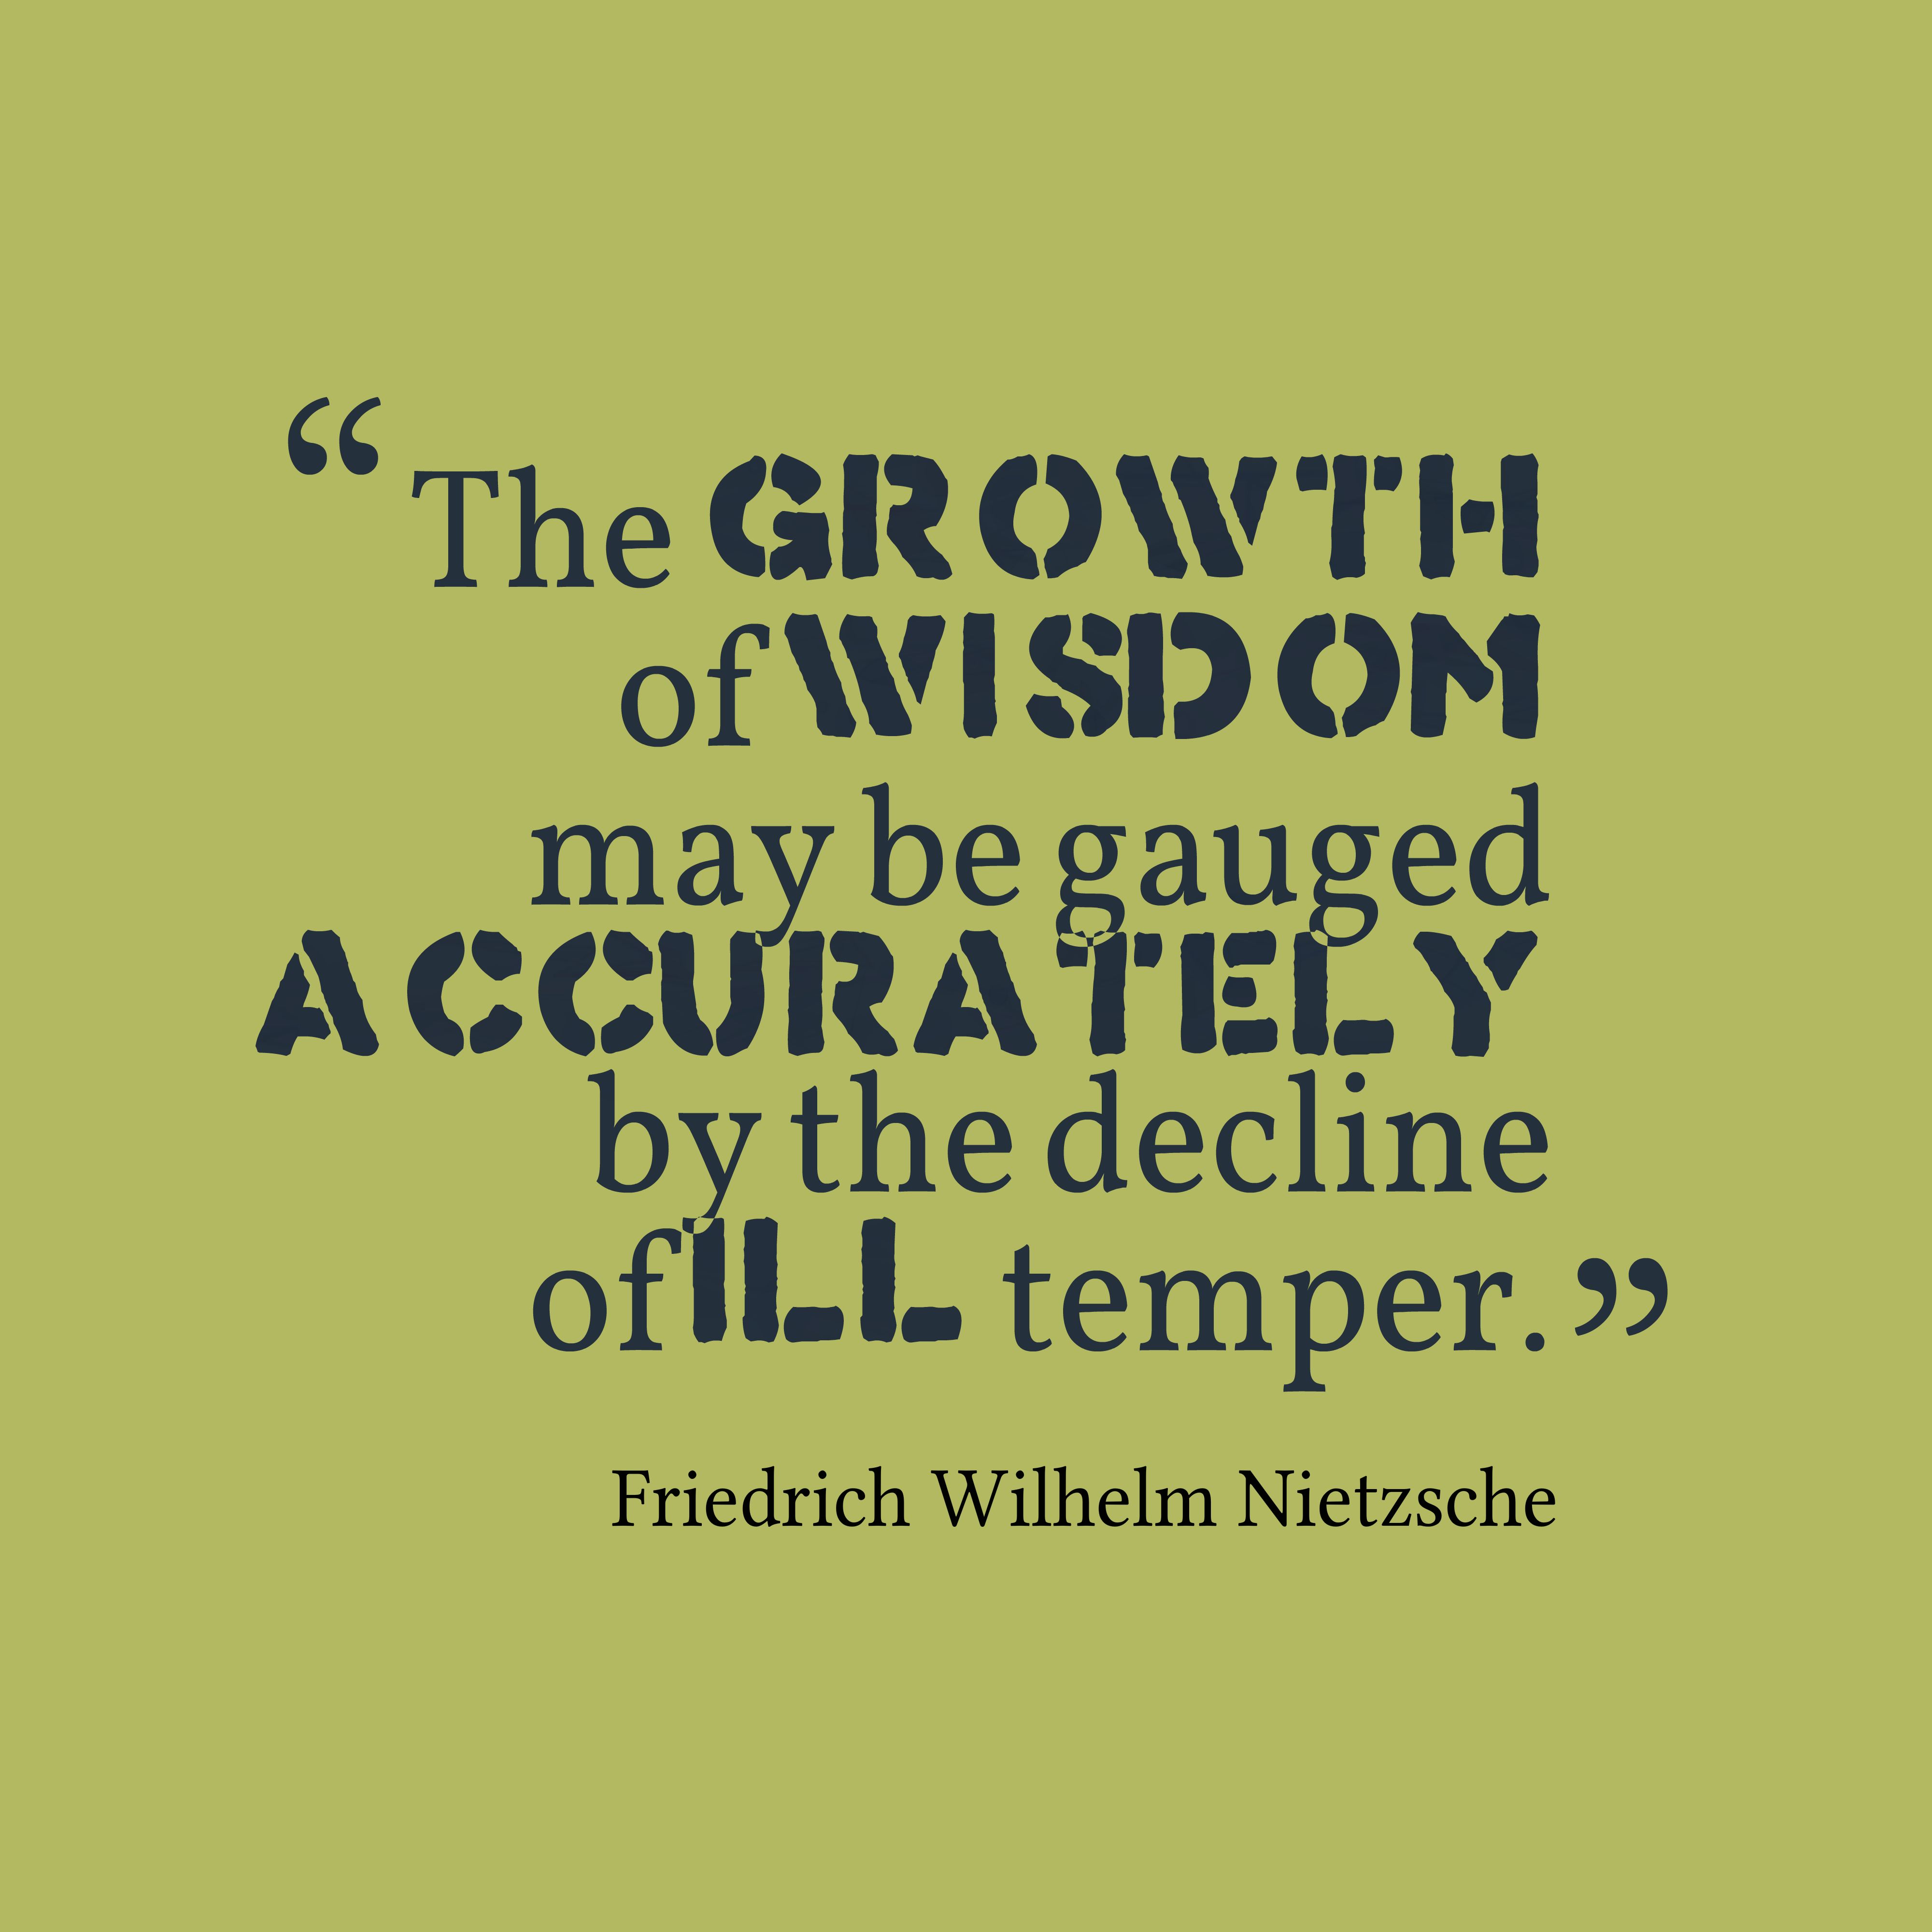 Quotes image of The growth of wisdom may be gauged accurately by the decline of ill temper.